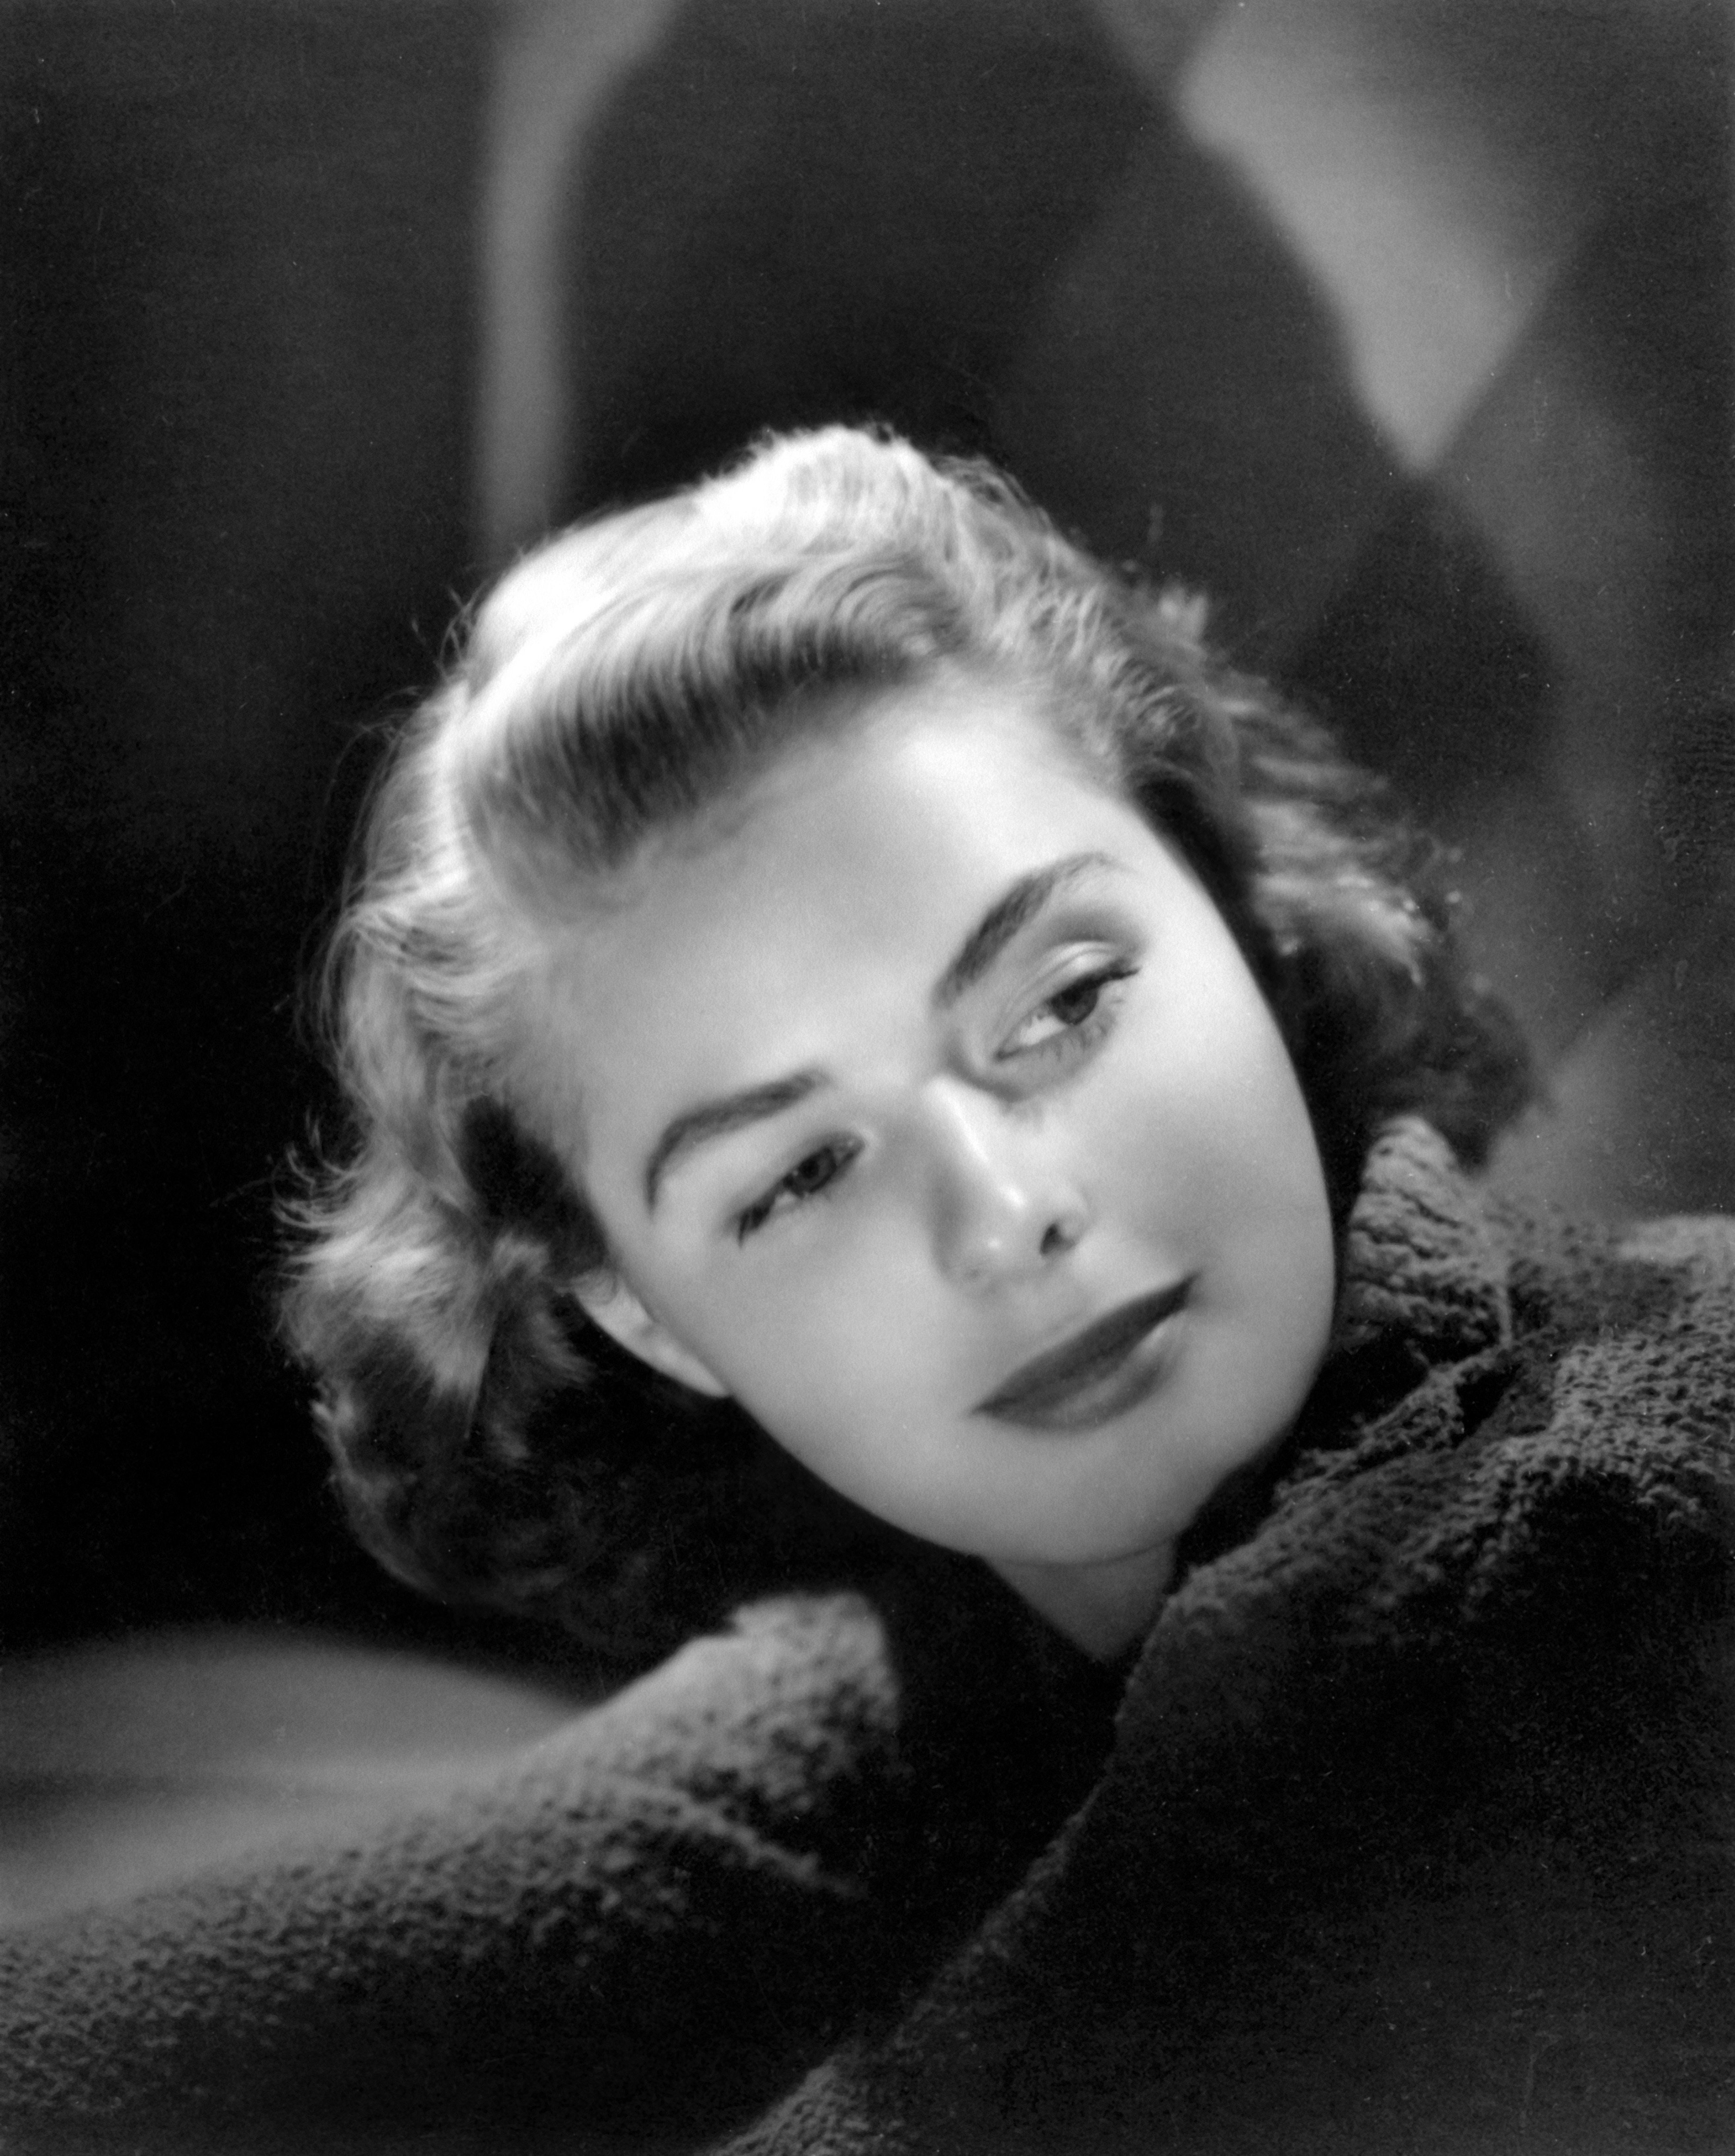 Ingrid Bergman, Swedish actress and film star, c1940. | Source: Getty Images